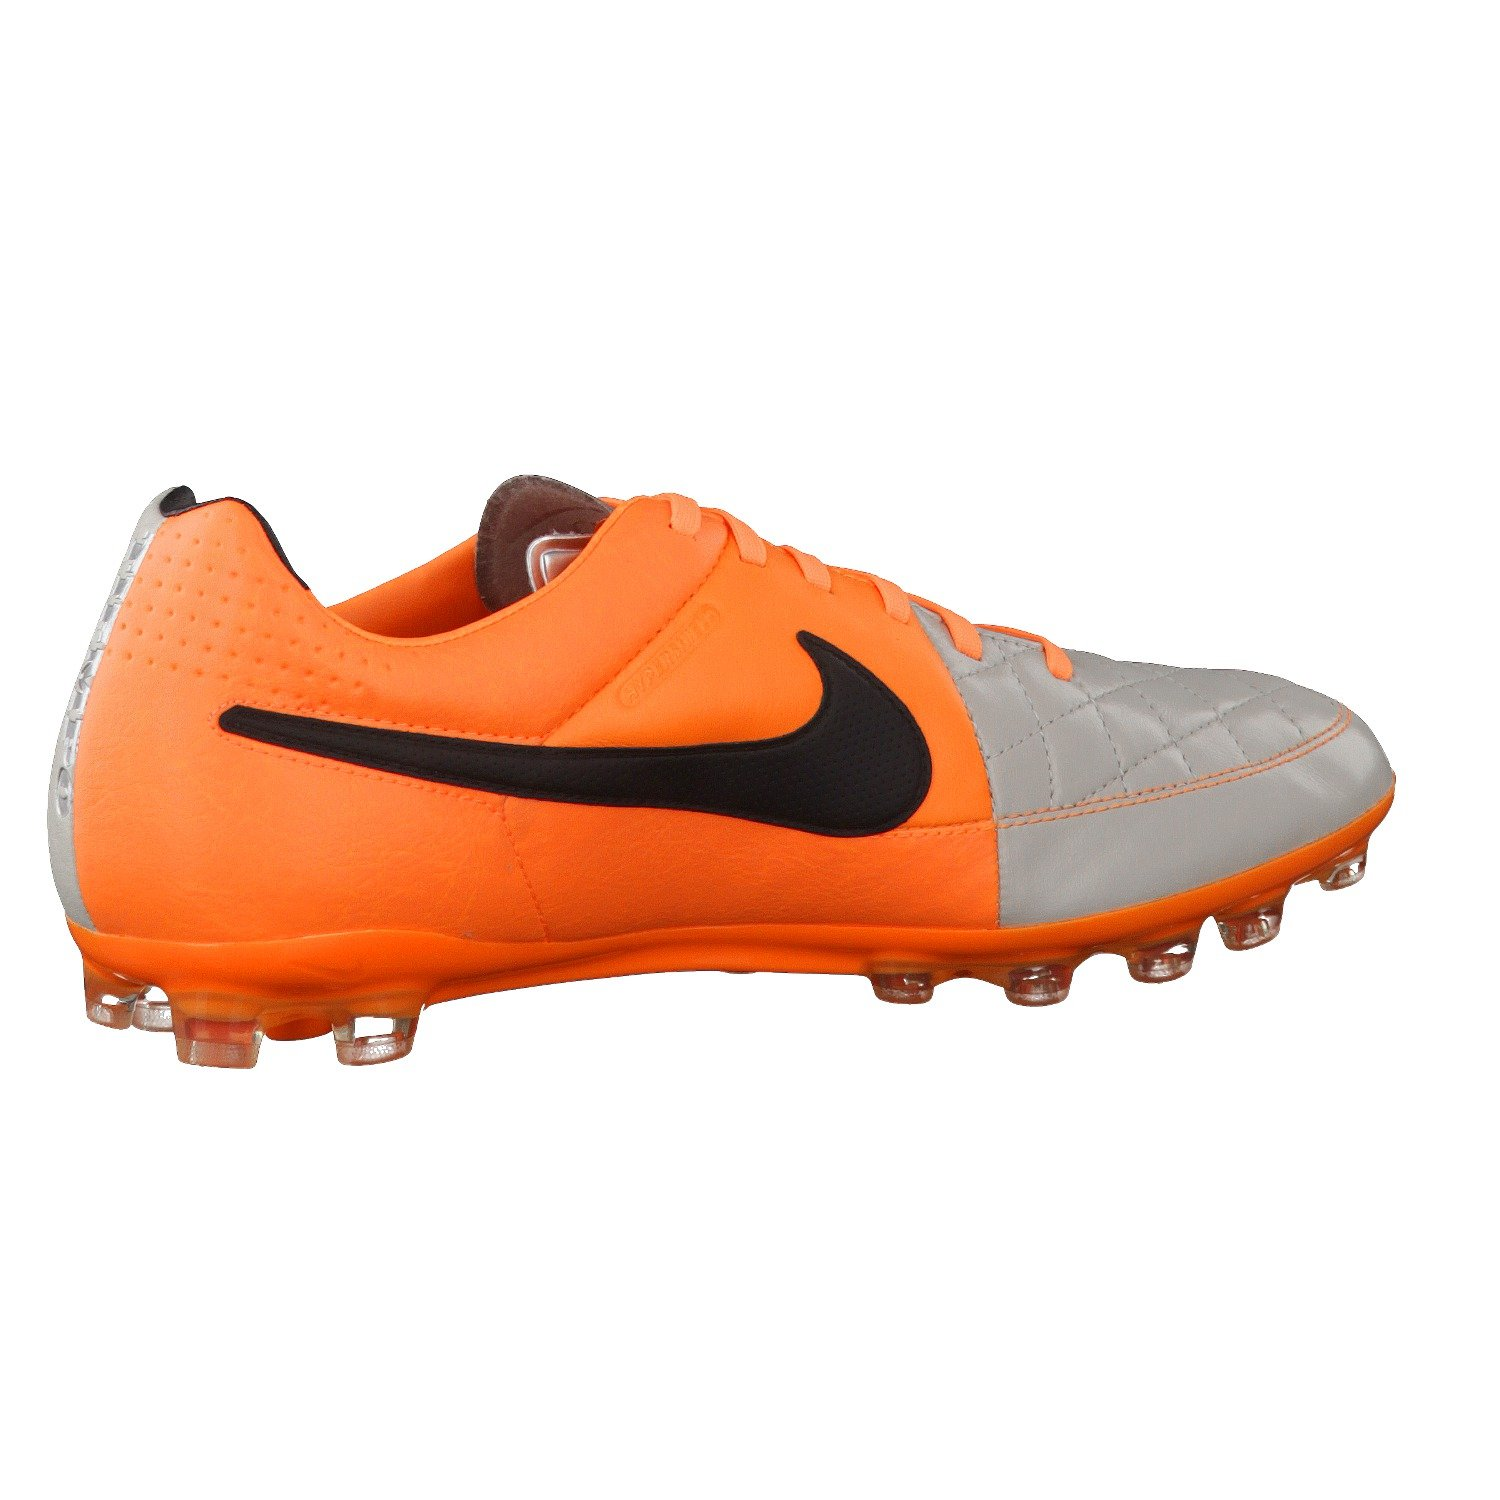 Nike tiempo legacy AG mens football boots 631615 008 uk 7.5 us 8.5 eu 42  soccer cleats artificial ground  Amazon.co.uk  Shoes   Bags 355723fbddaff